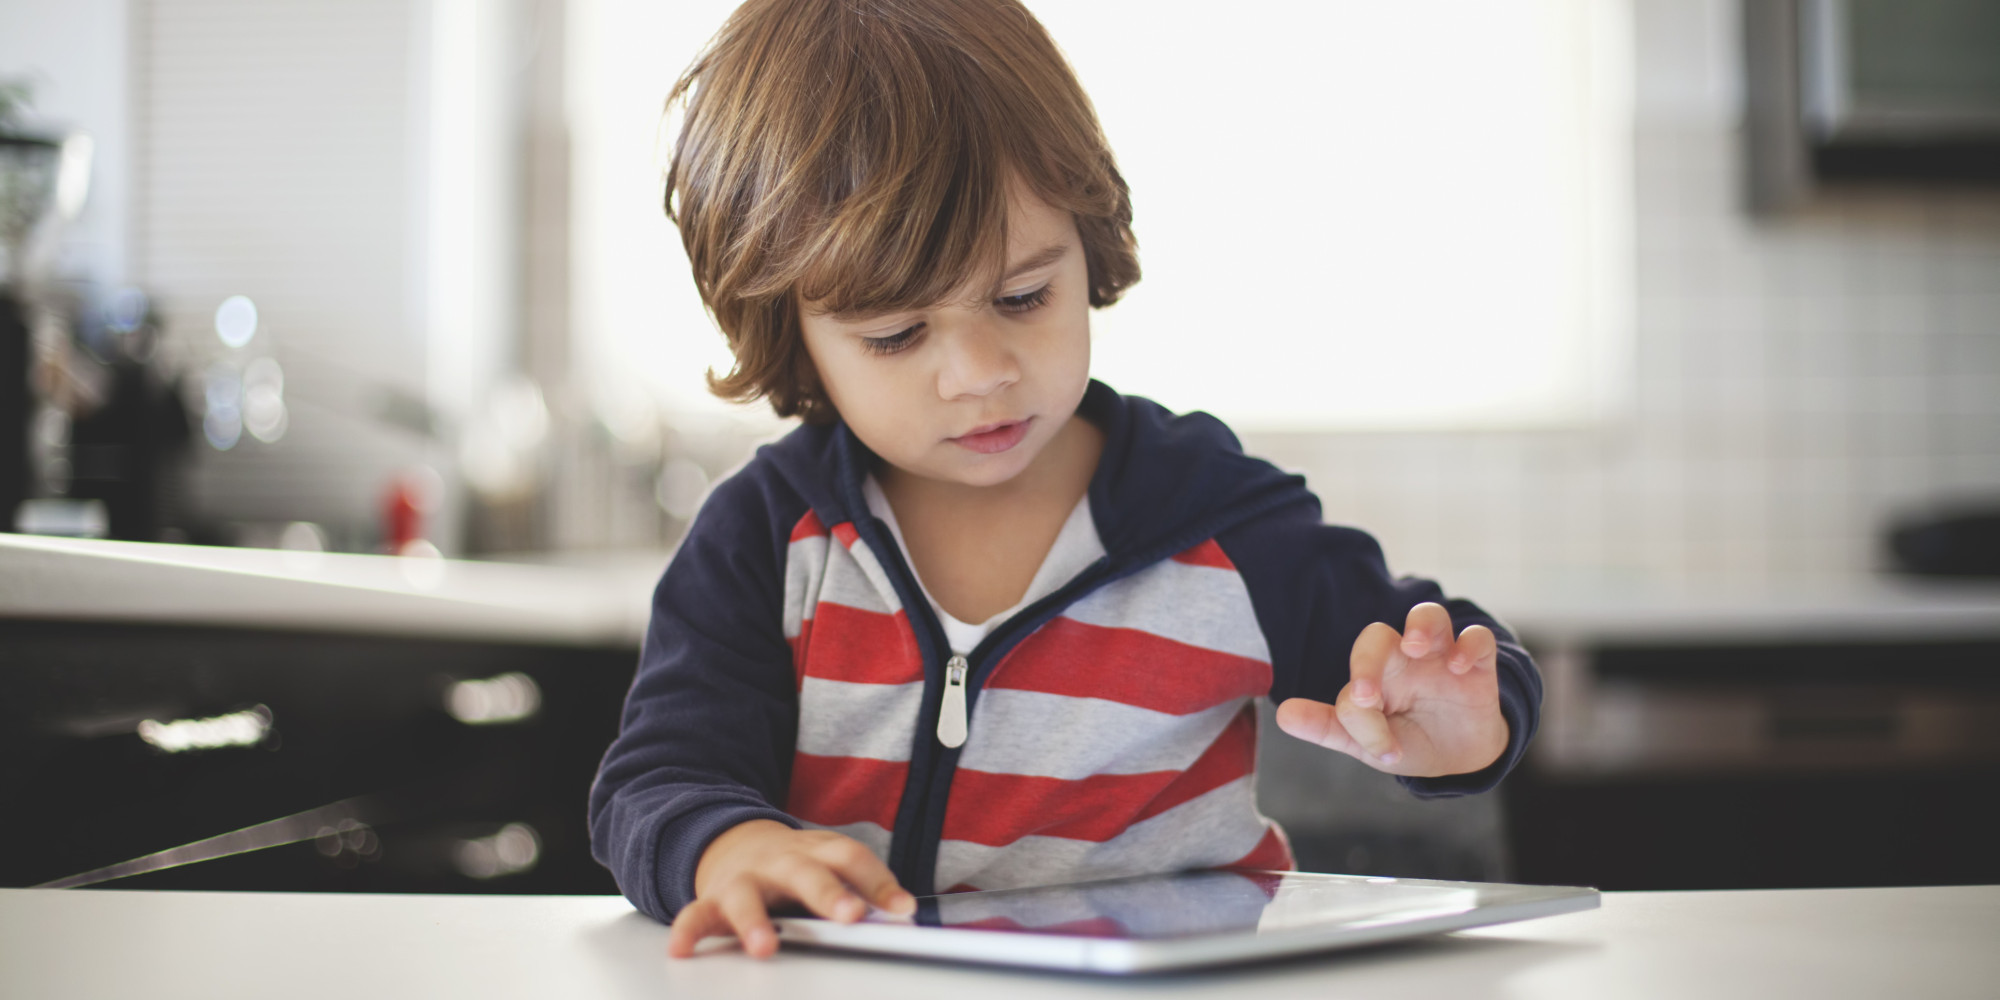 ipad kid screen child children ipads study well being using technology devices pads